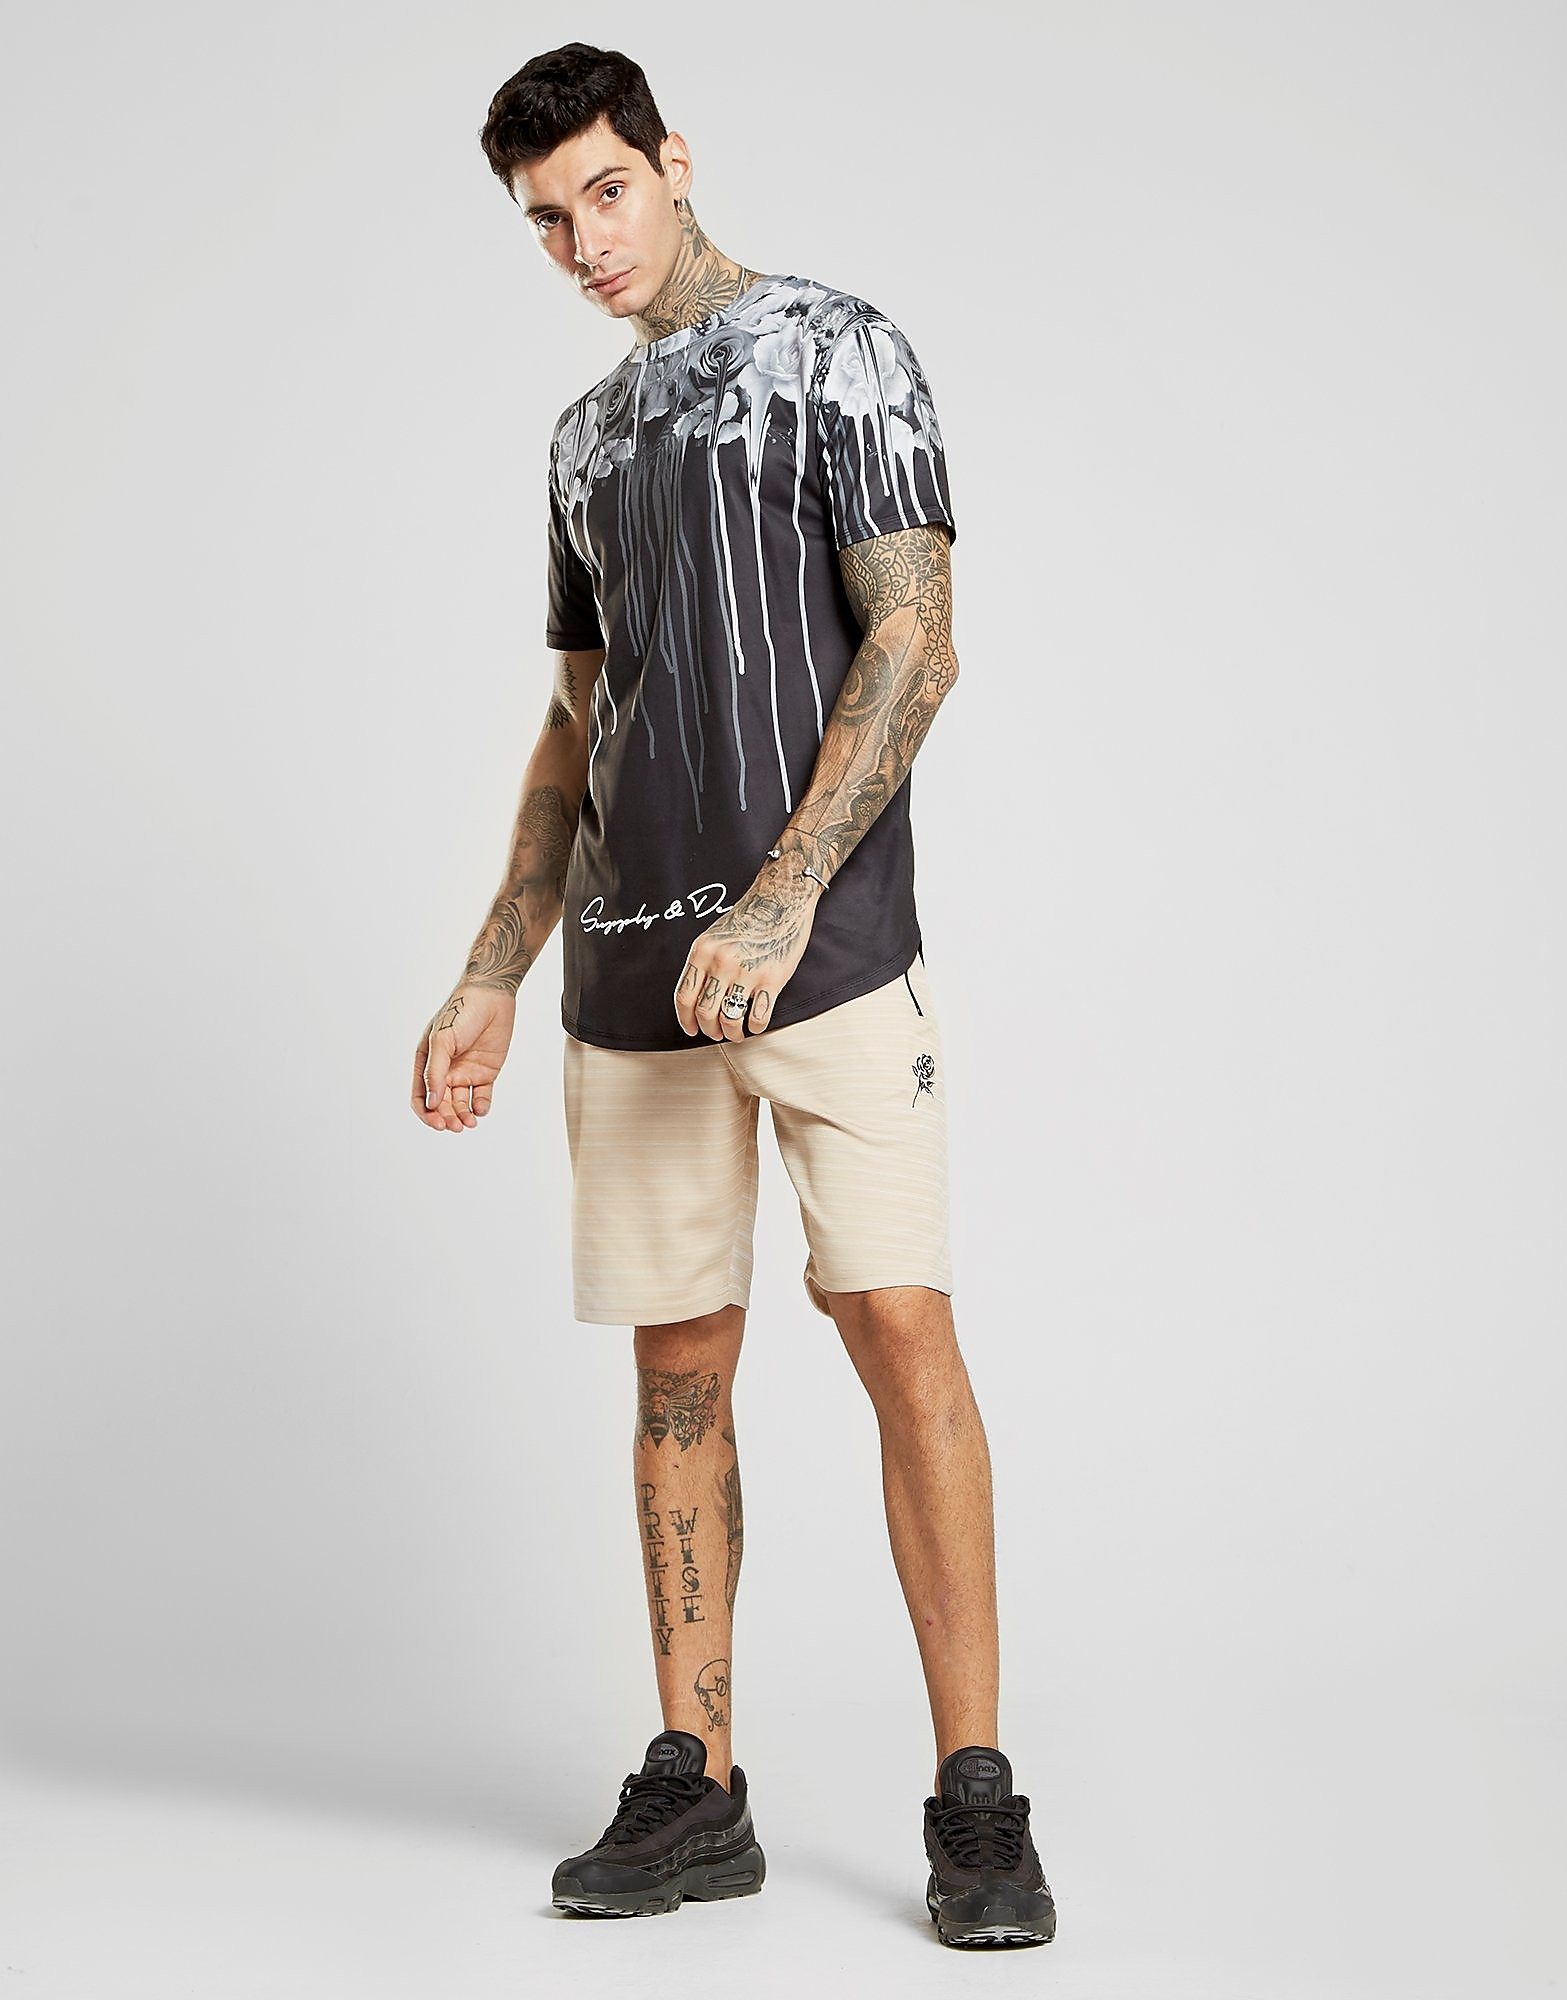 Supply & Demand Ocean Shorts